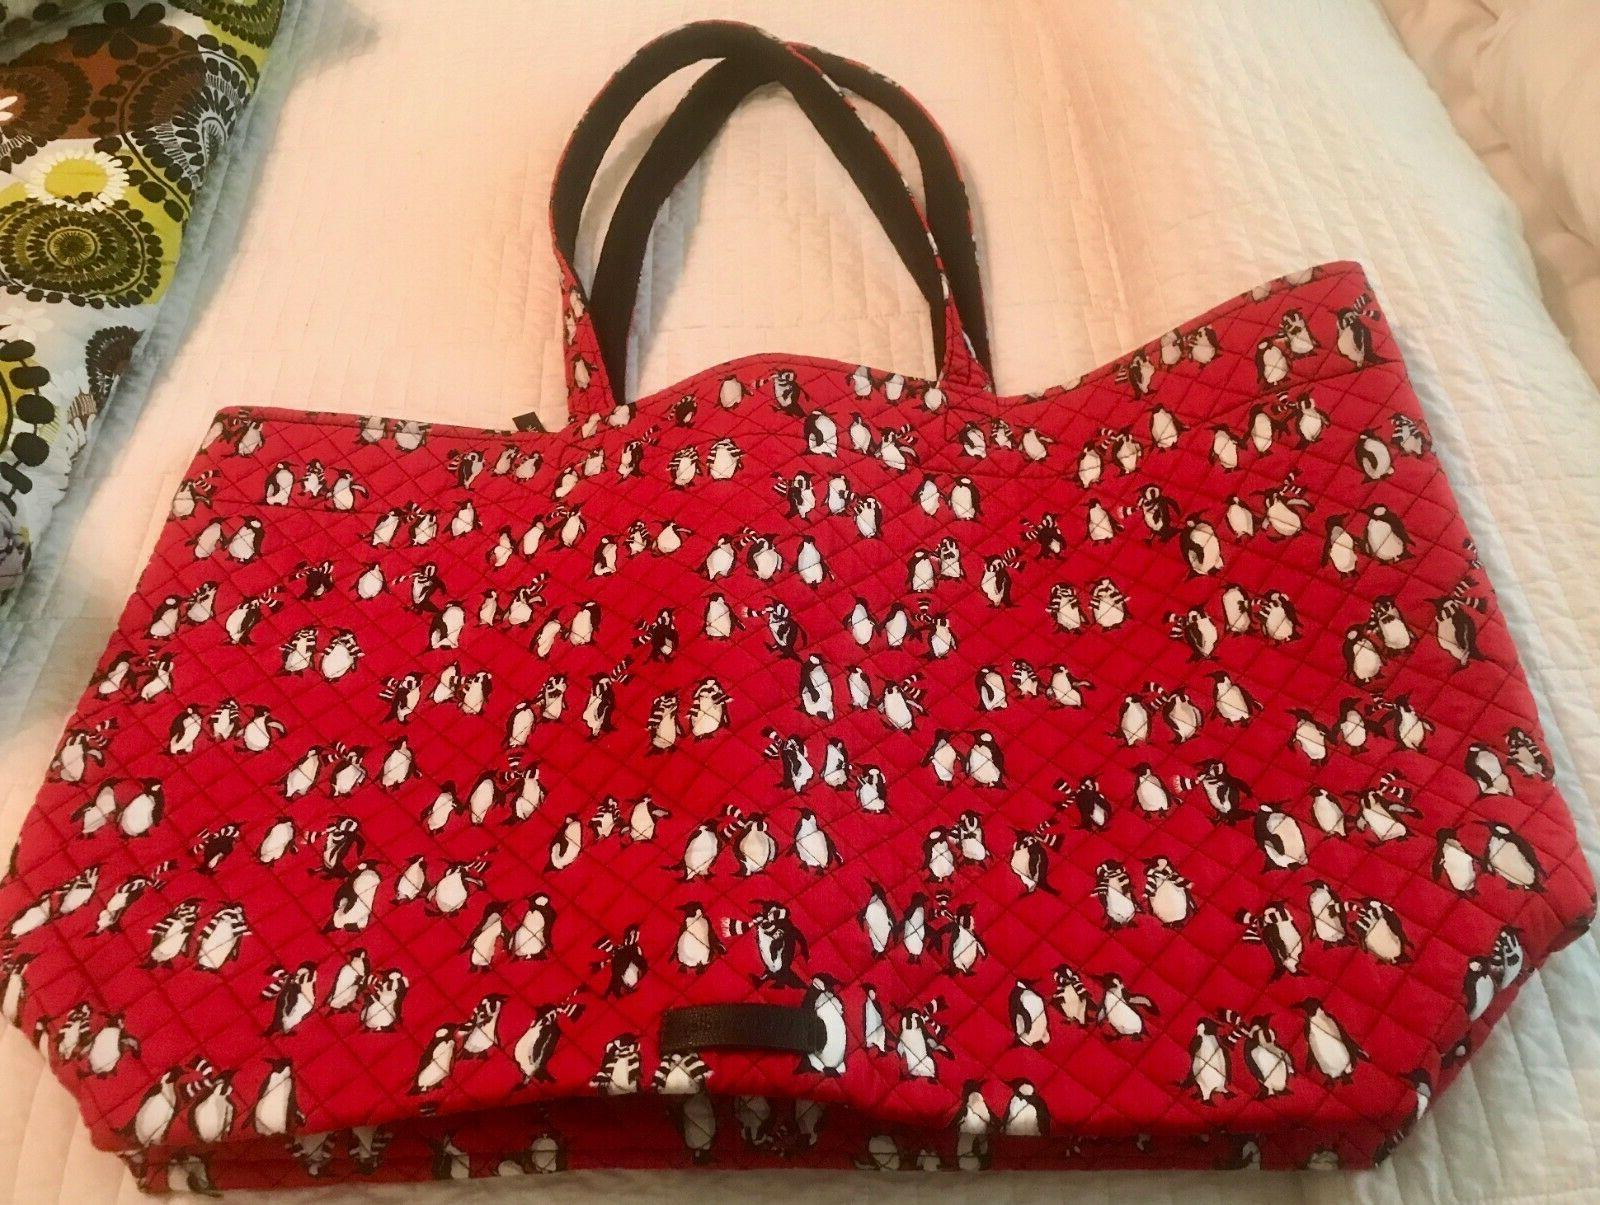 1e2f02c4d NWT Vera Bradley Iconic Grand Tote Bag in Playful Penguins R